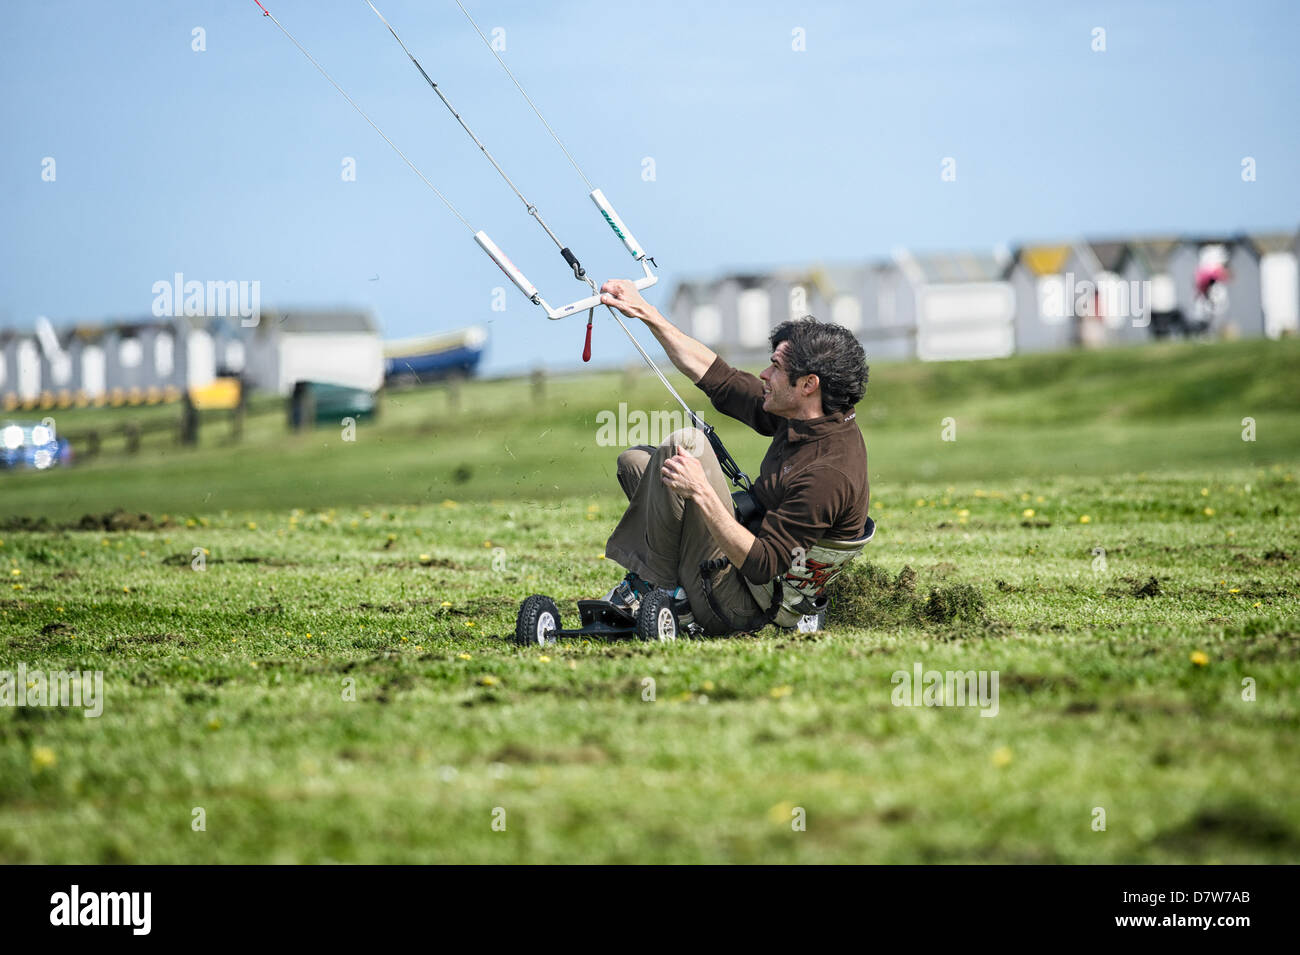 A land boarder at speed on freshly cut grass at Goring Gap, Worthing. Features Slight Blur due to speed of action - Stock Image